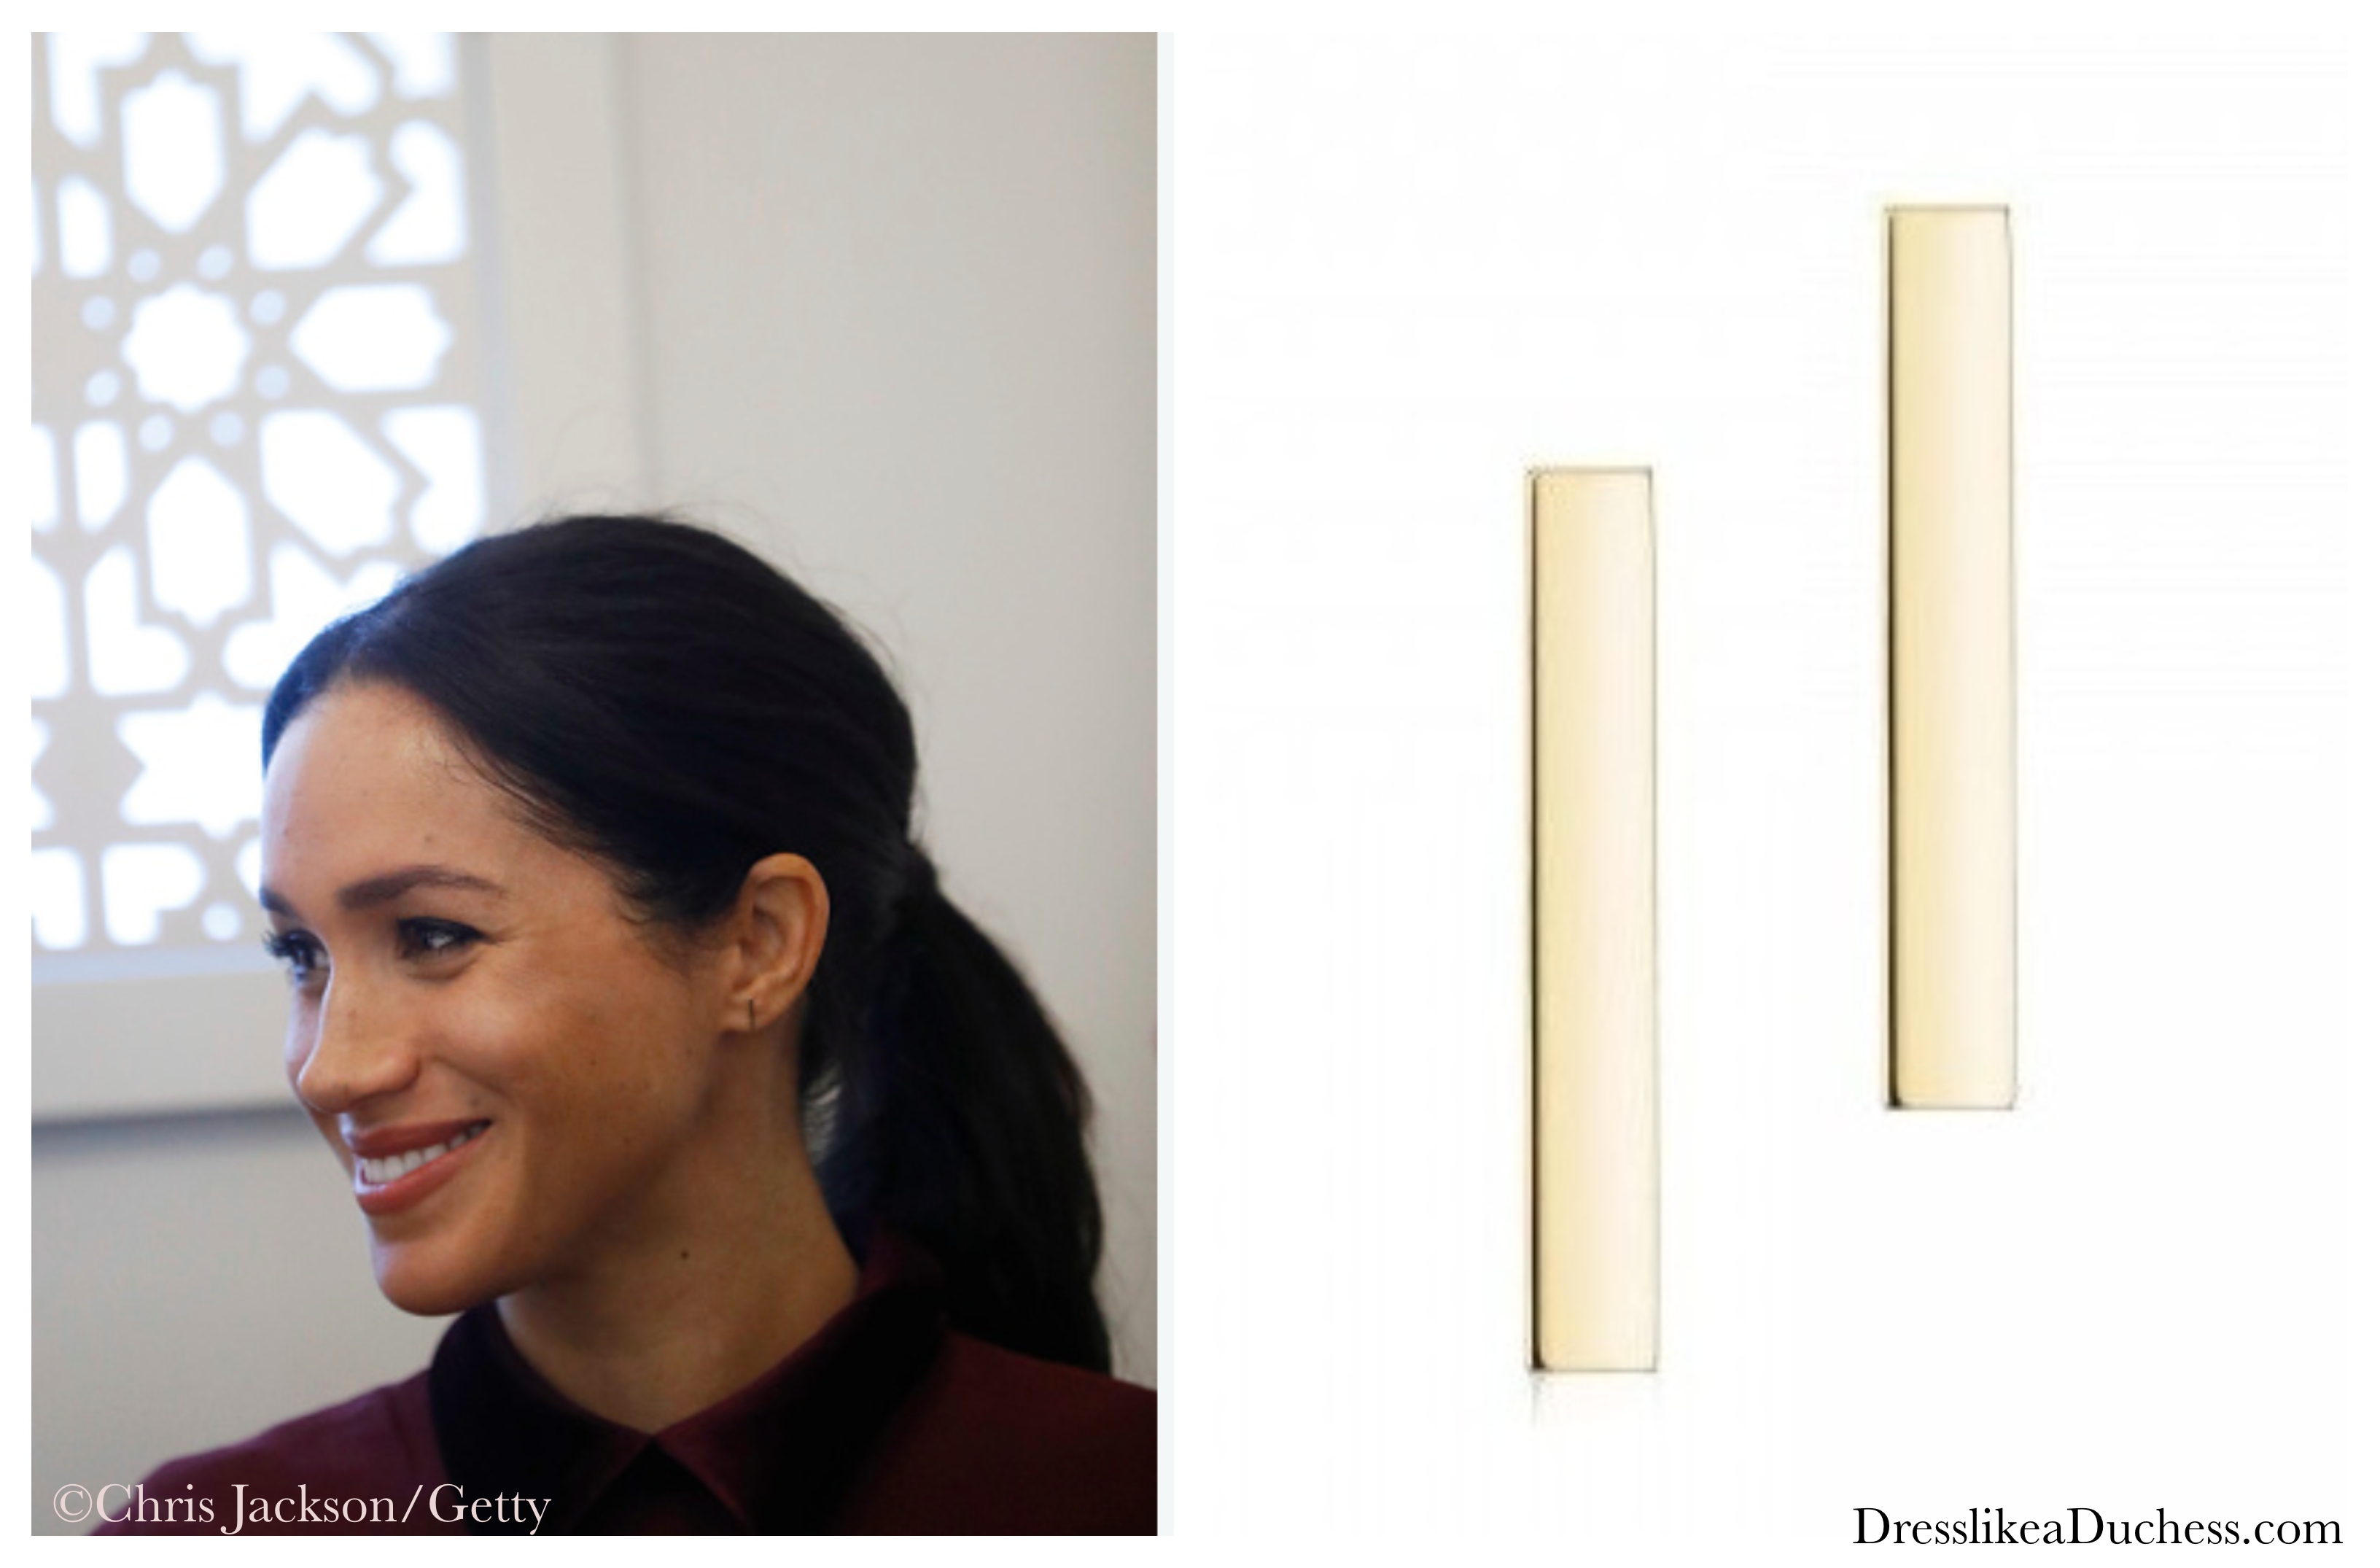 Birks 'Plaisirs de Birks' Gold Bar Earrings-Meghan Markle